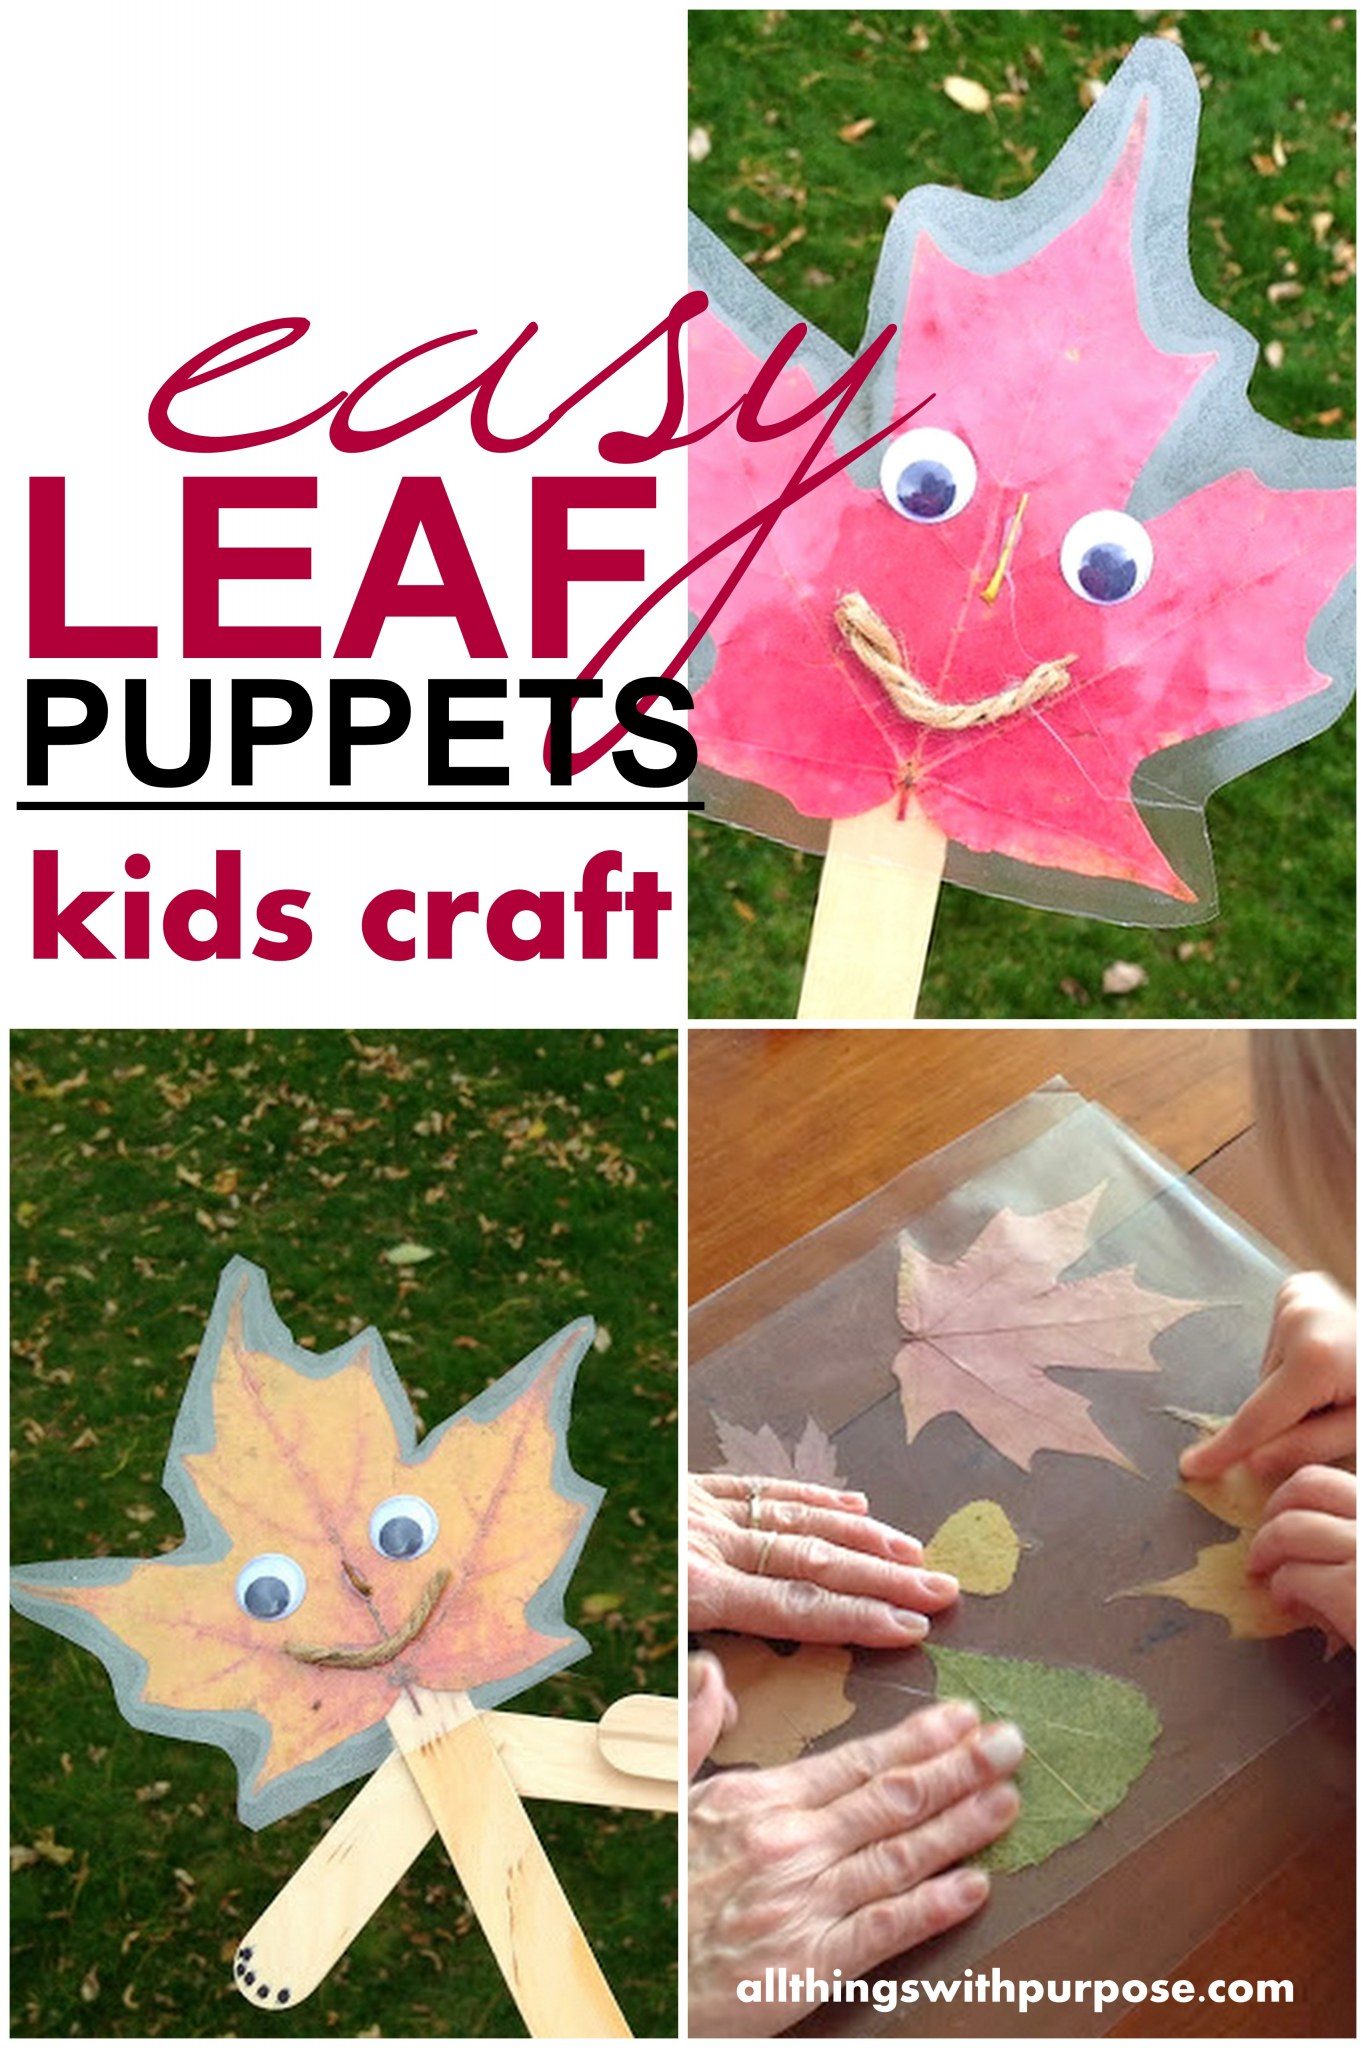 leafpuppets